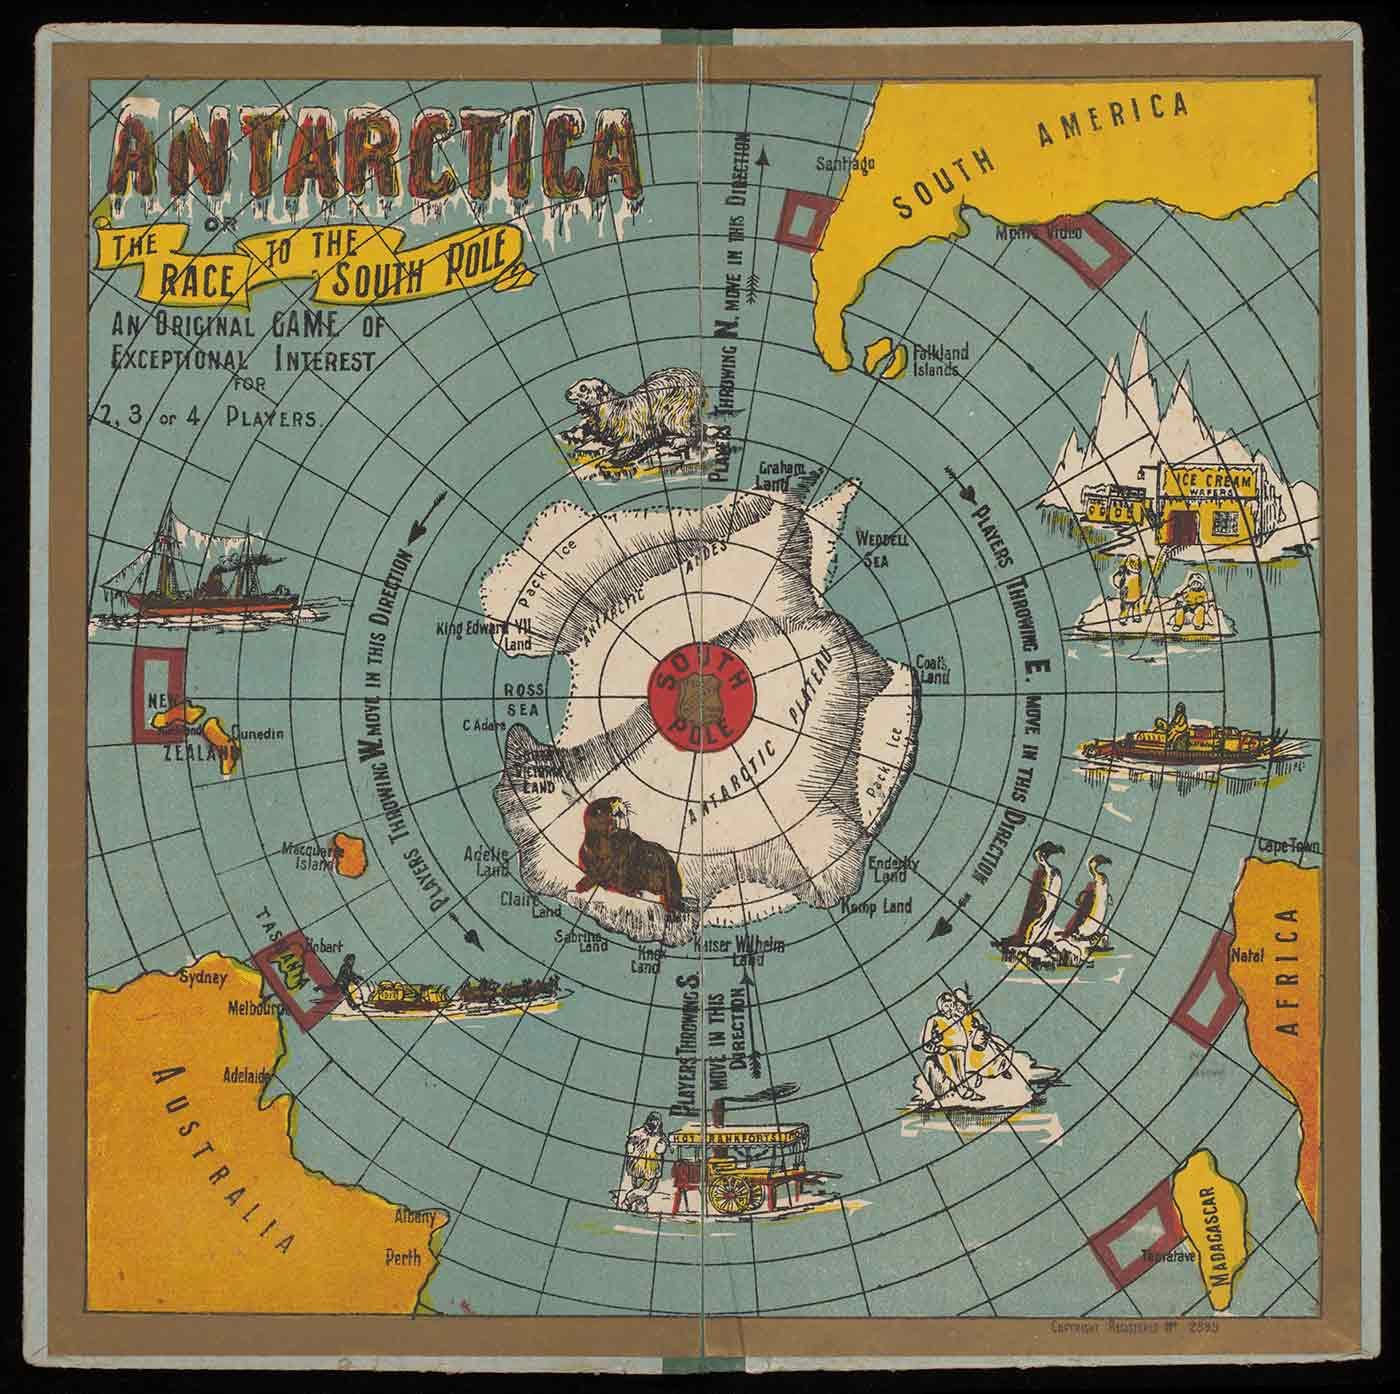 'Antarctica' board game showing a white landmass at centre, with game squares radiating out to Australia, Africa and South America. - click to view larger image